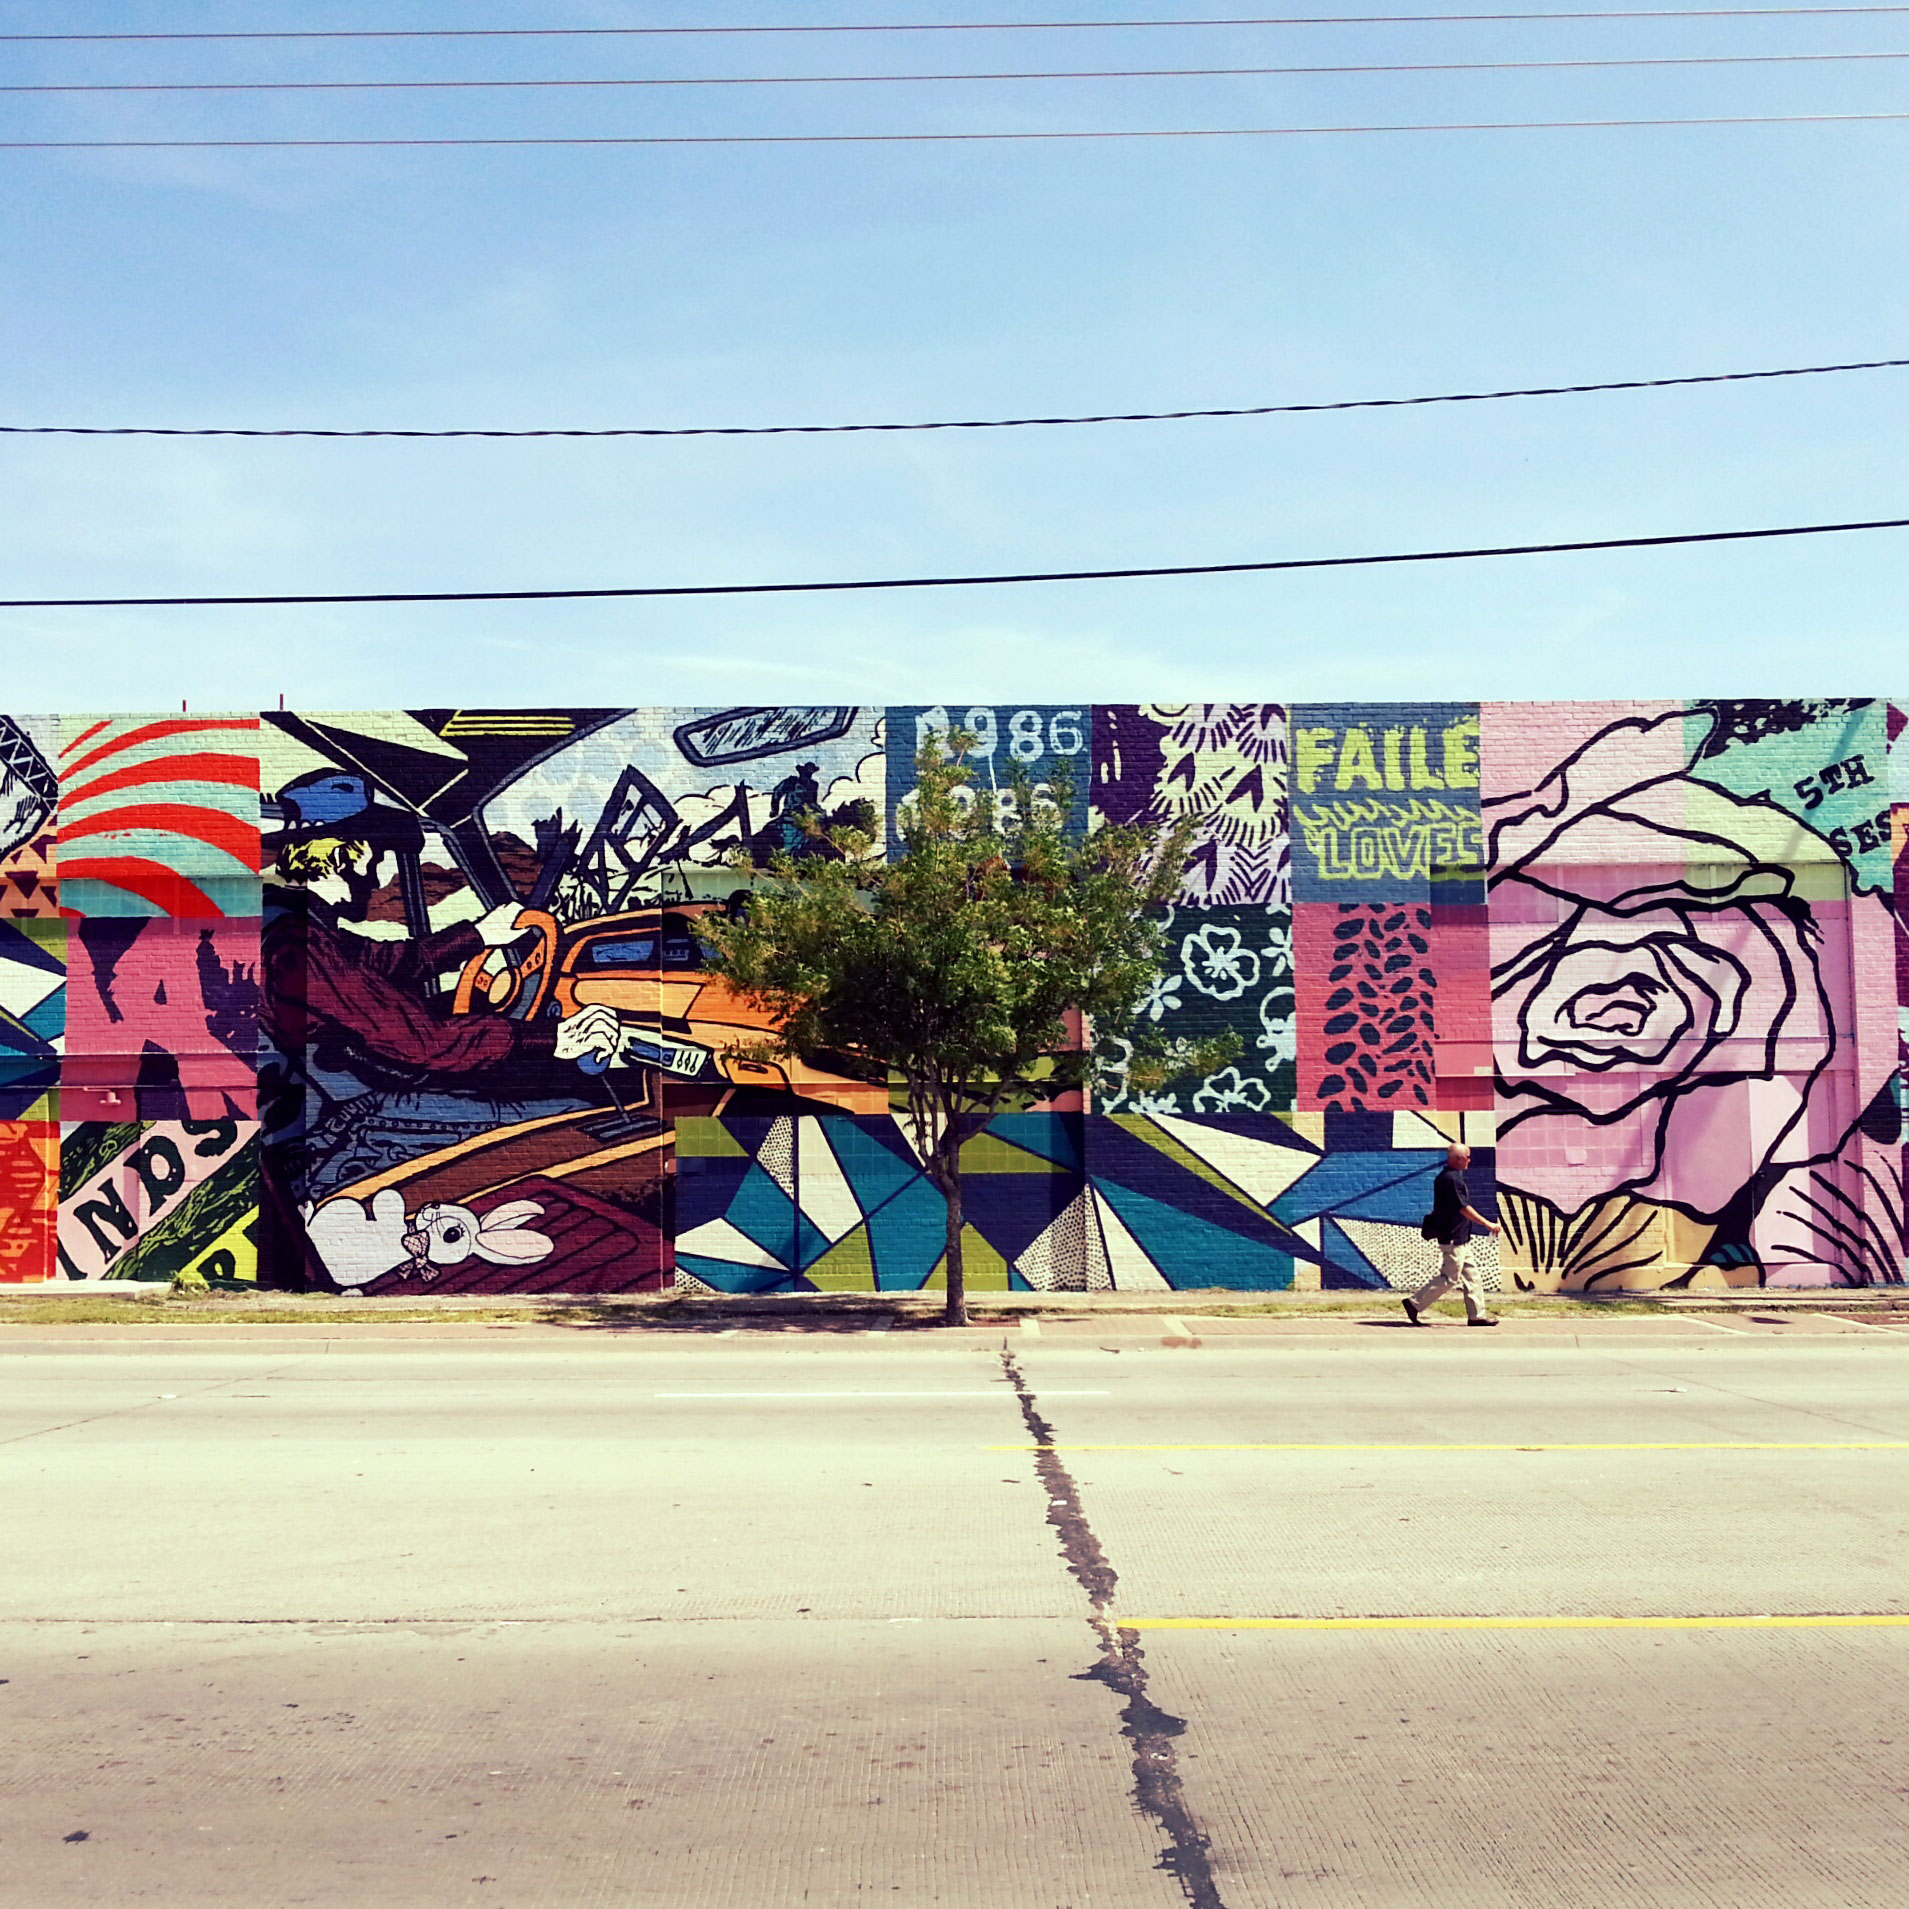 Graffiti wall dallas - The City S Free Wall Program Turned An Ugly Warehouse Into One Of Dallas Greatest Public Murals